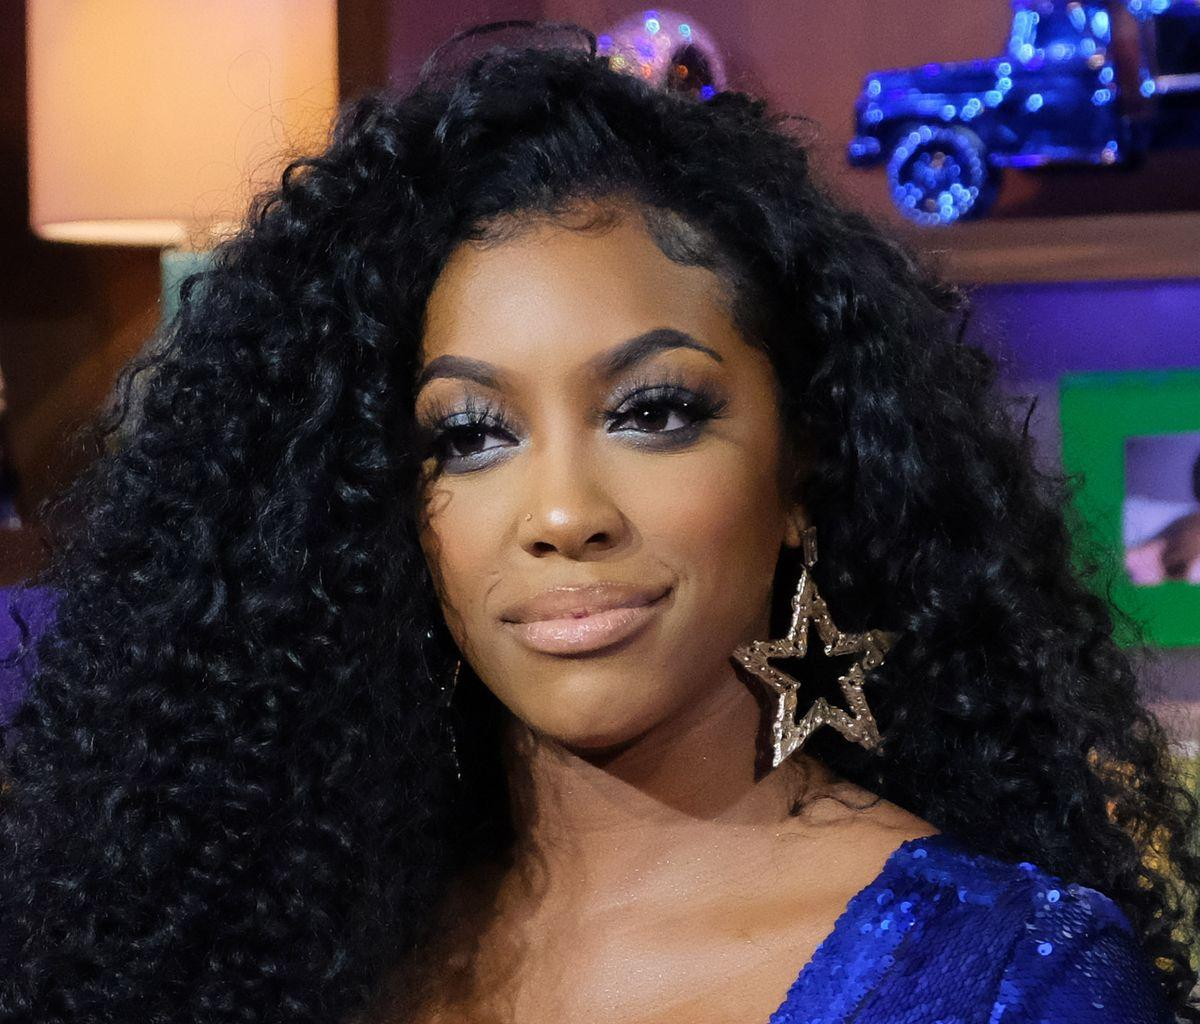 Porsha Williams Has Something Powerful Coming From Her Family And Friends